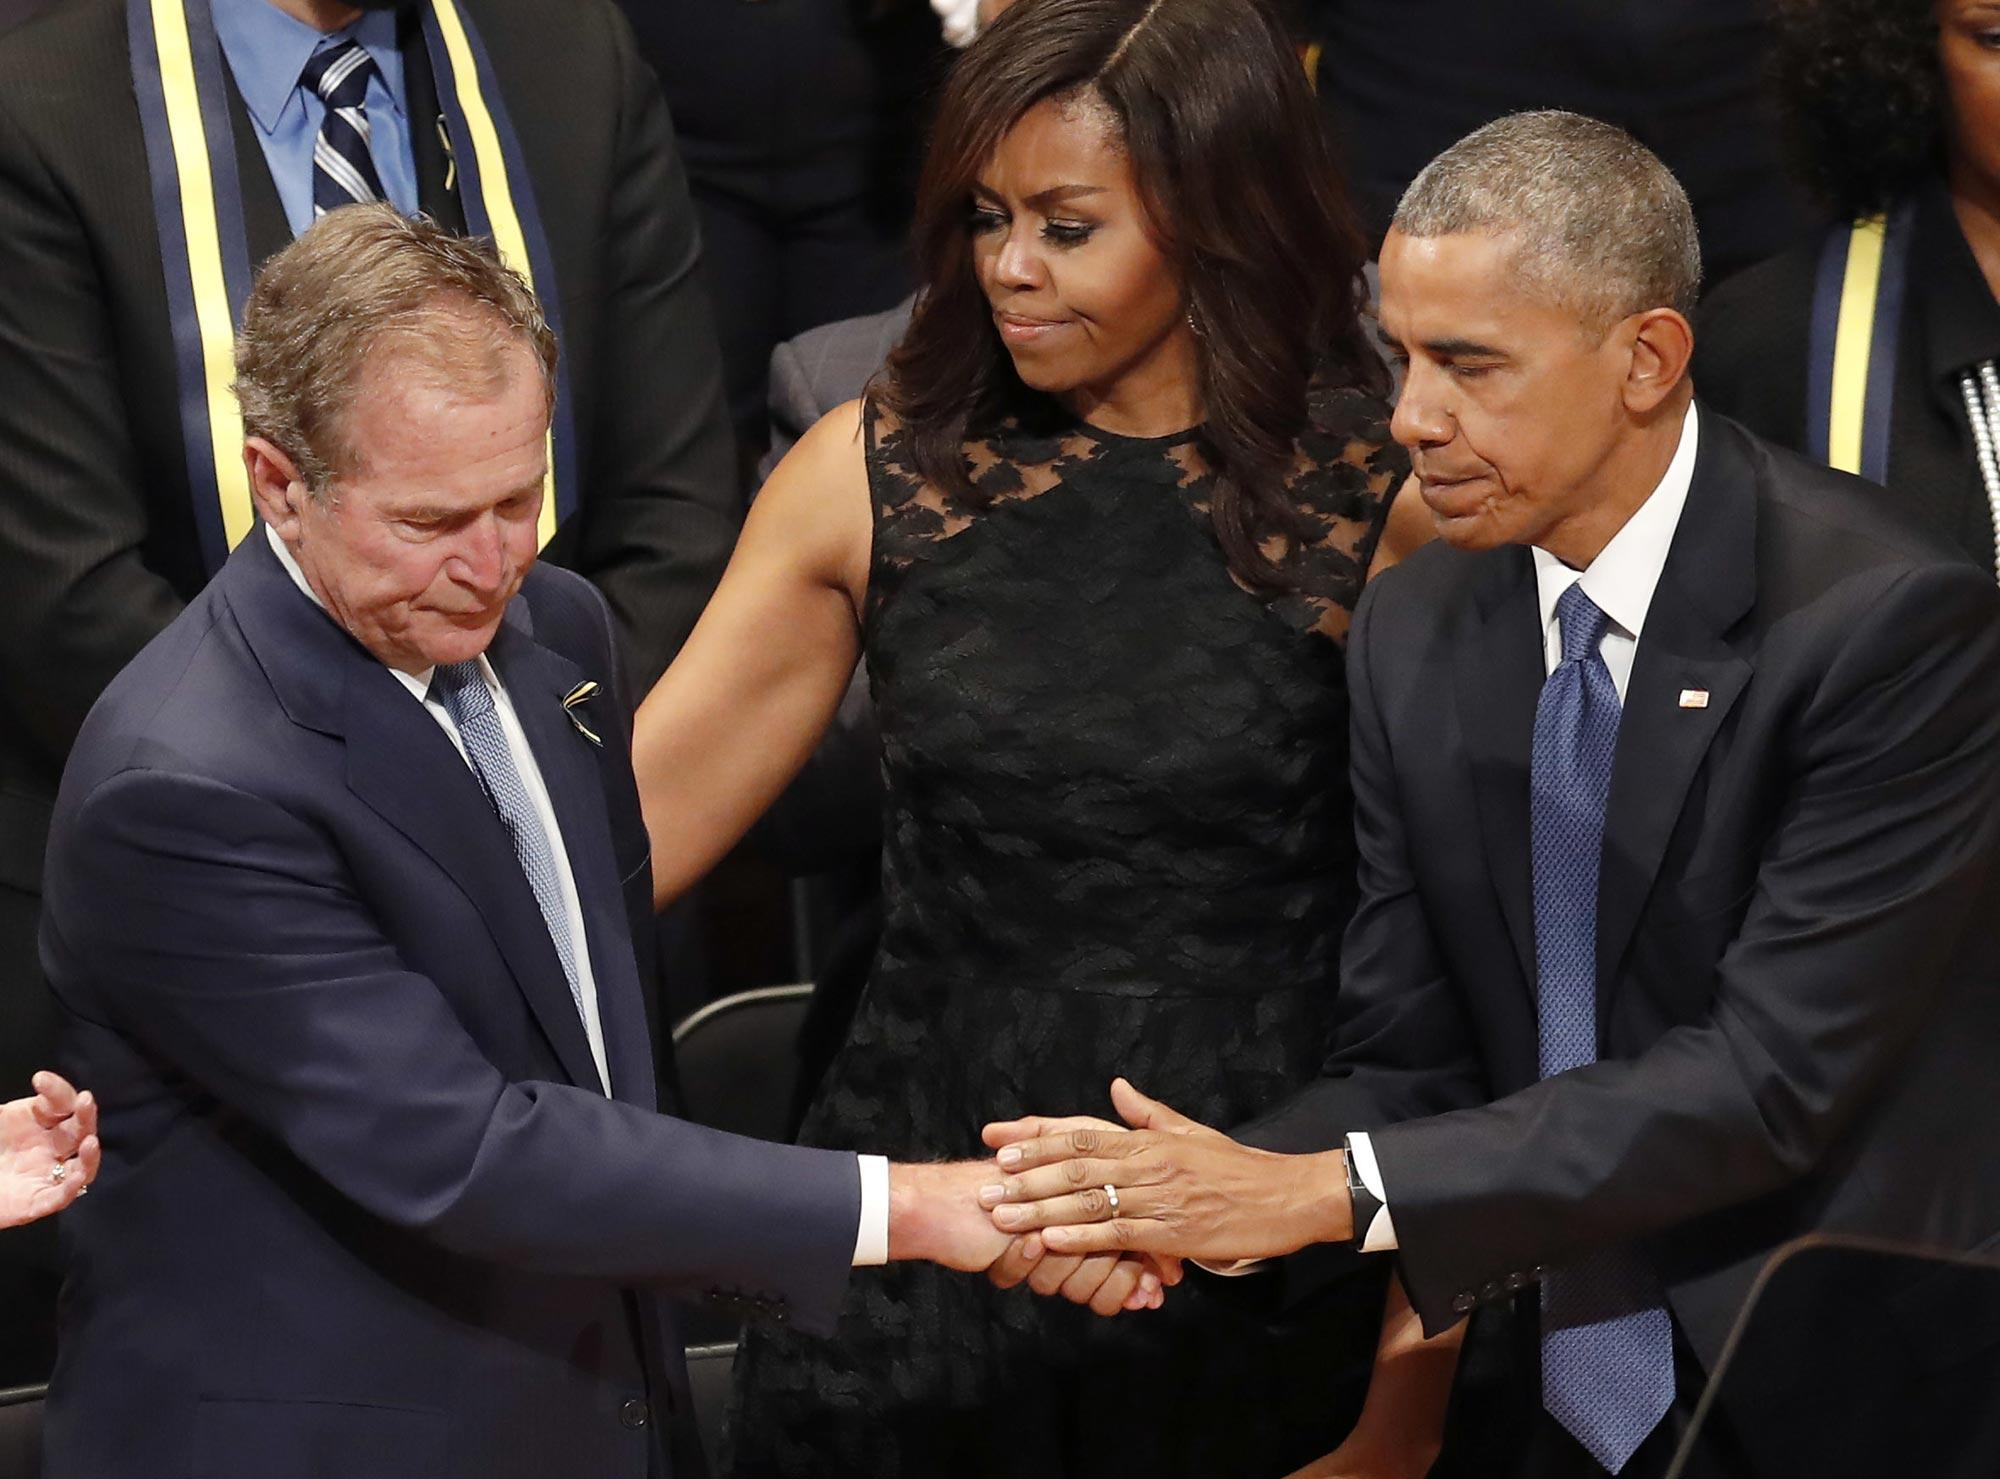 See Throwback Photo of Obamas Consoling George W. Bush as His Dad Is Hospitalized